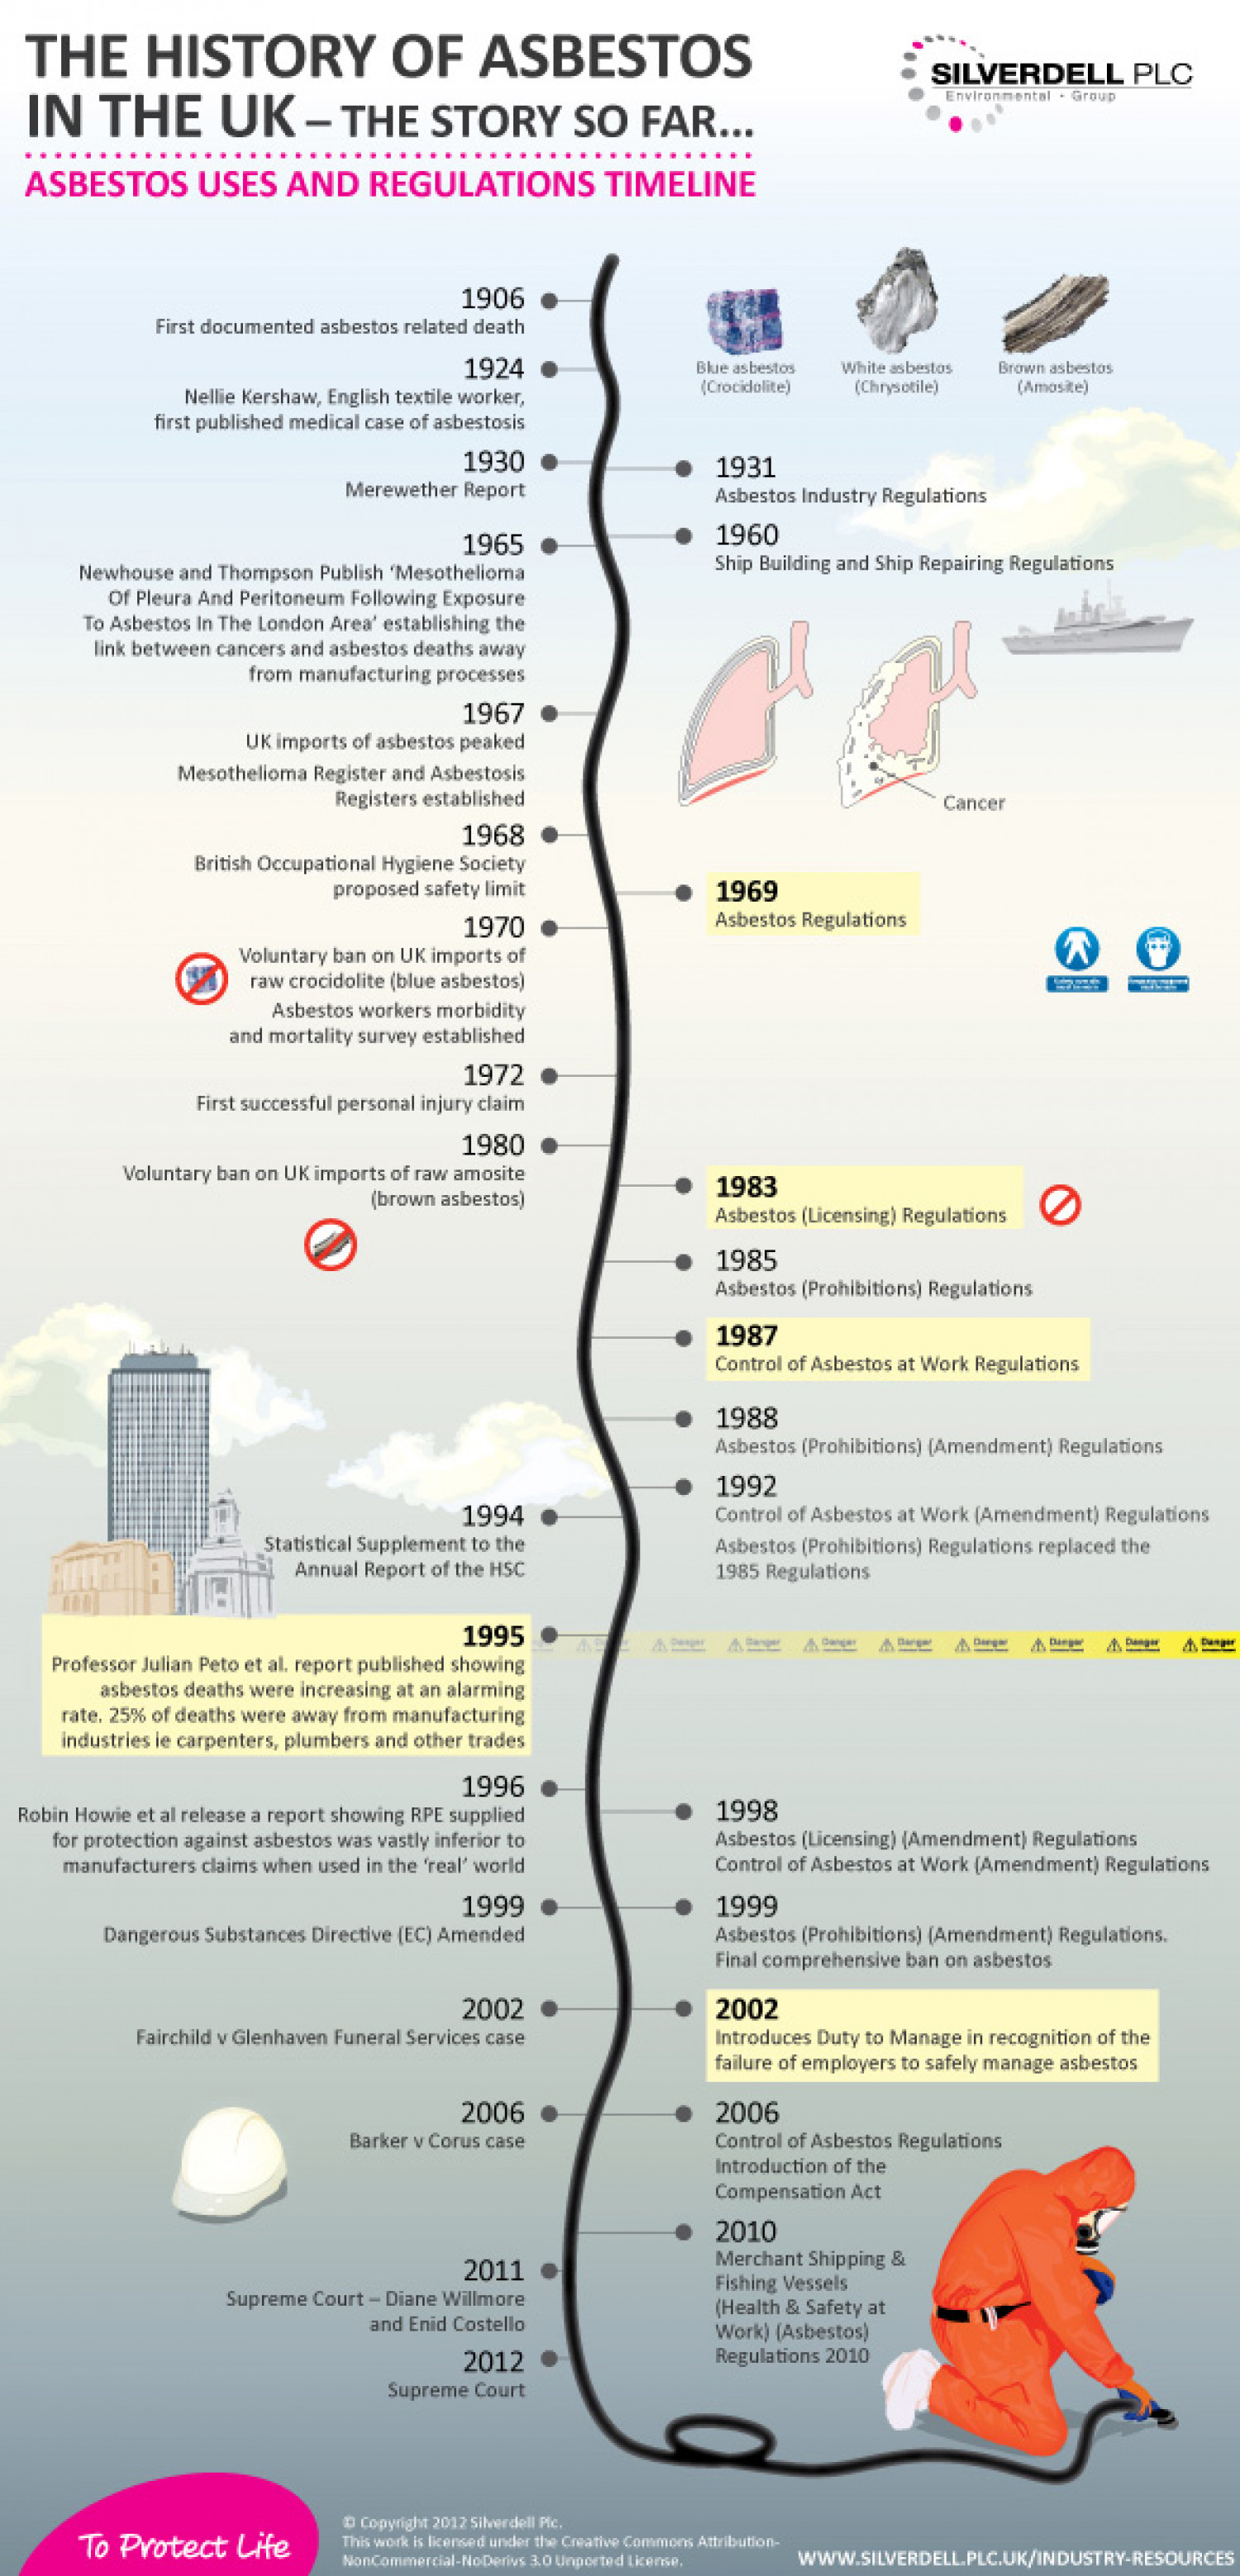 The History of Asbestos in the UK Infographic